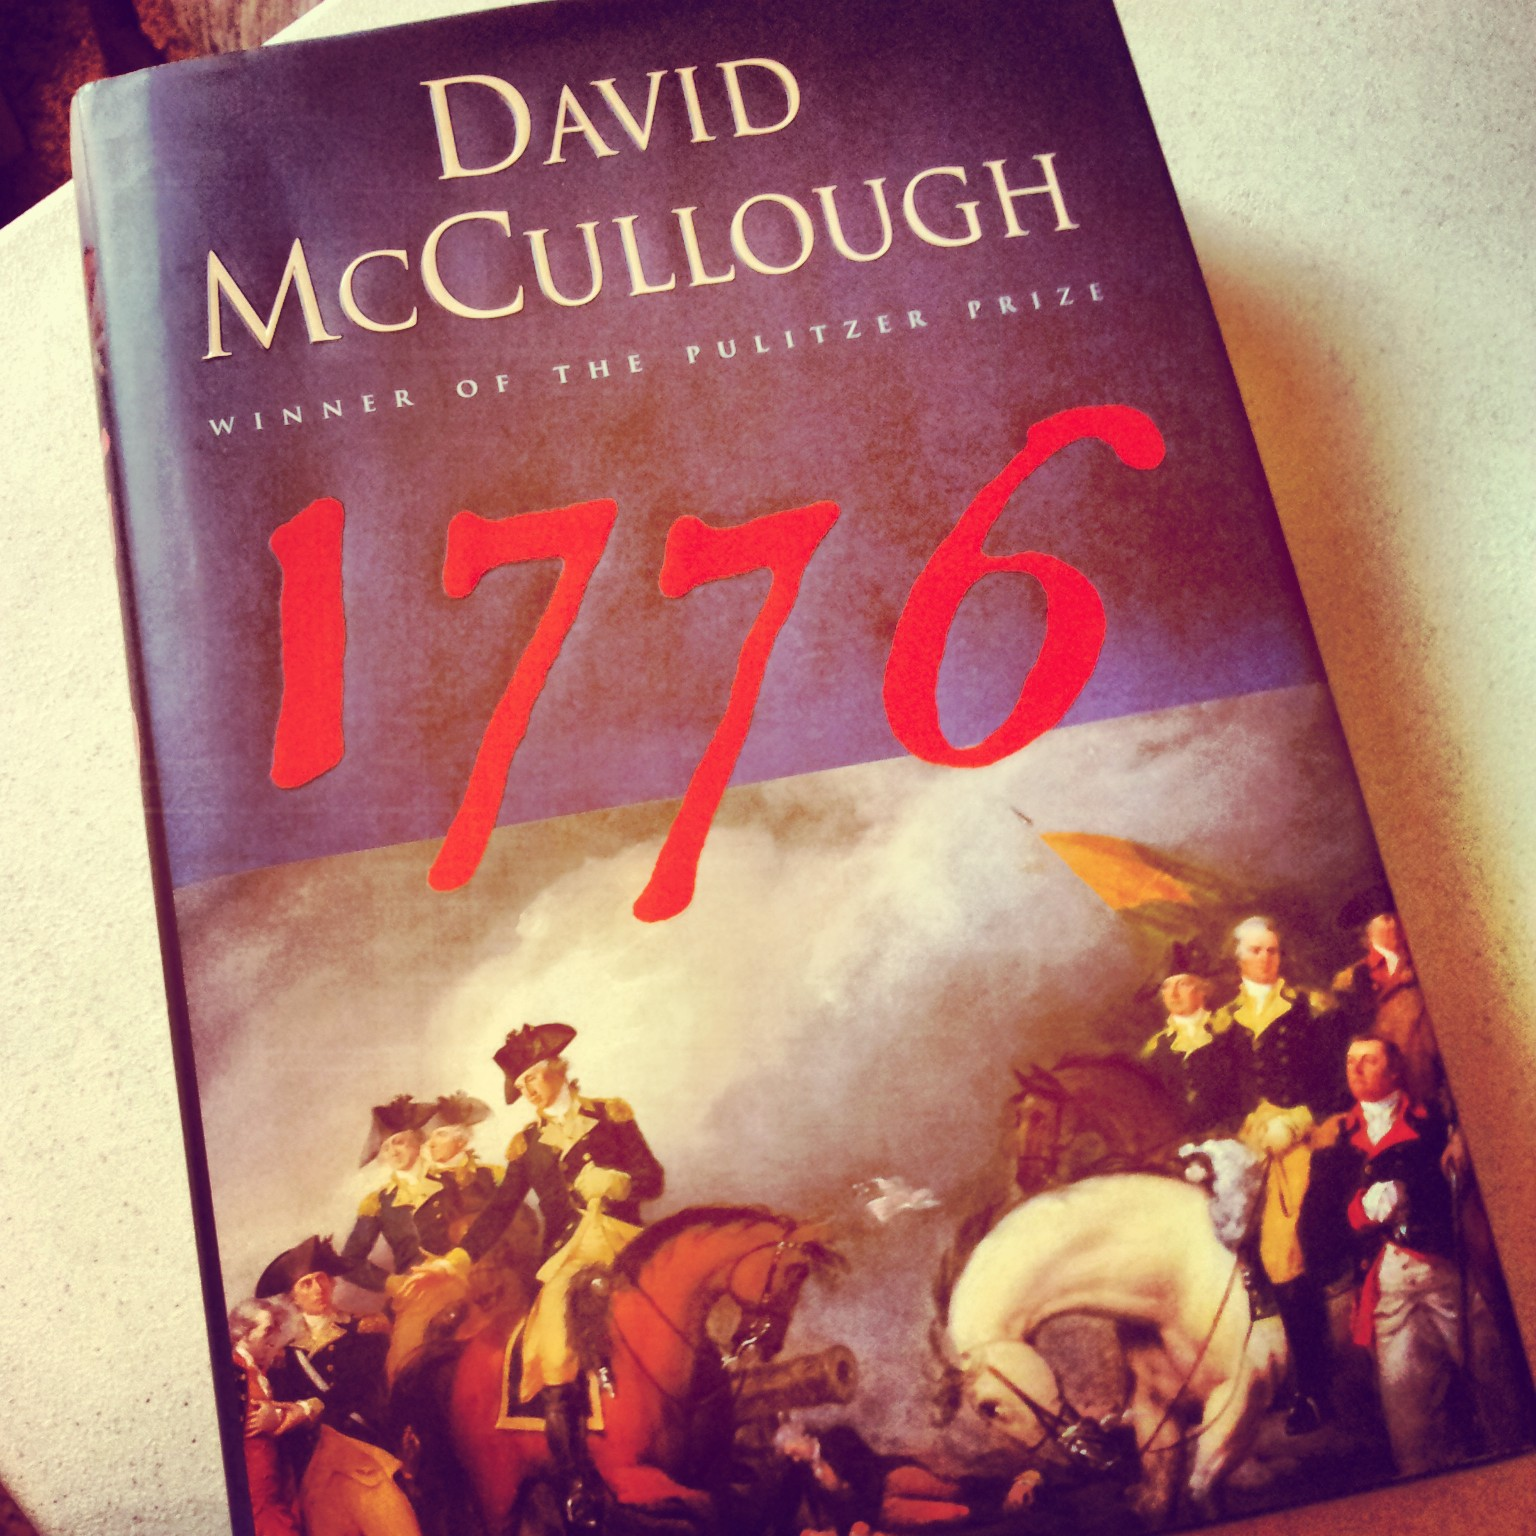 1776 david mccullough analysis essay David mccullough shows how washington won the war of independence by default in 1776.